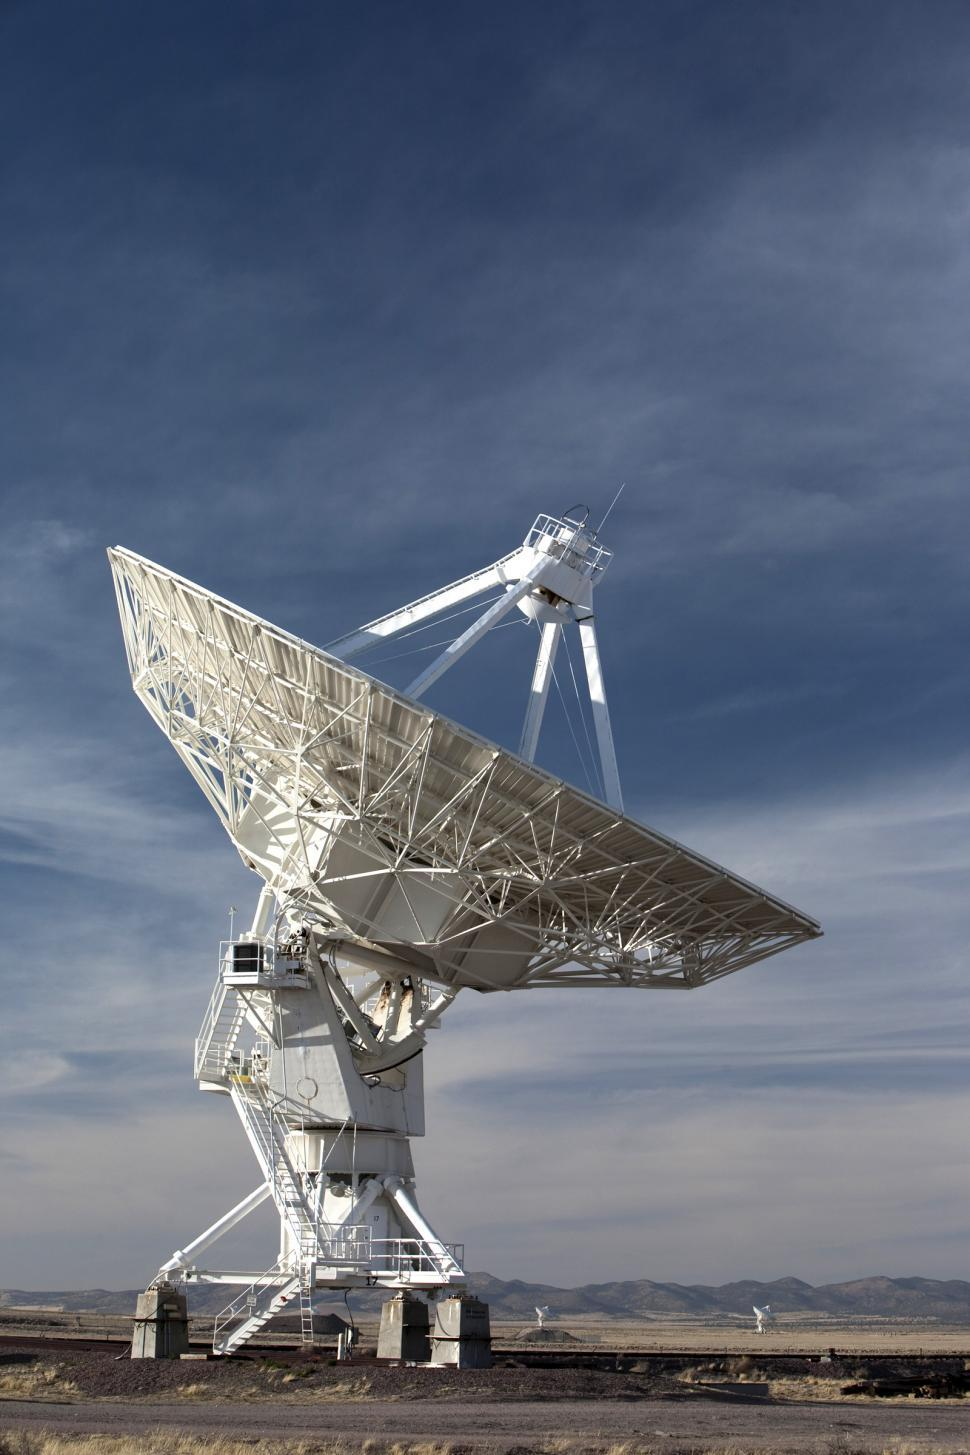 Download Free Stock HD Photo of VLA (Very Large Array) Socorro, NM Online